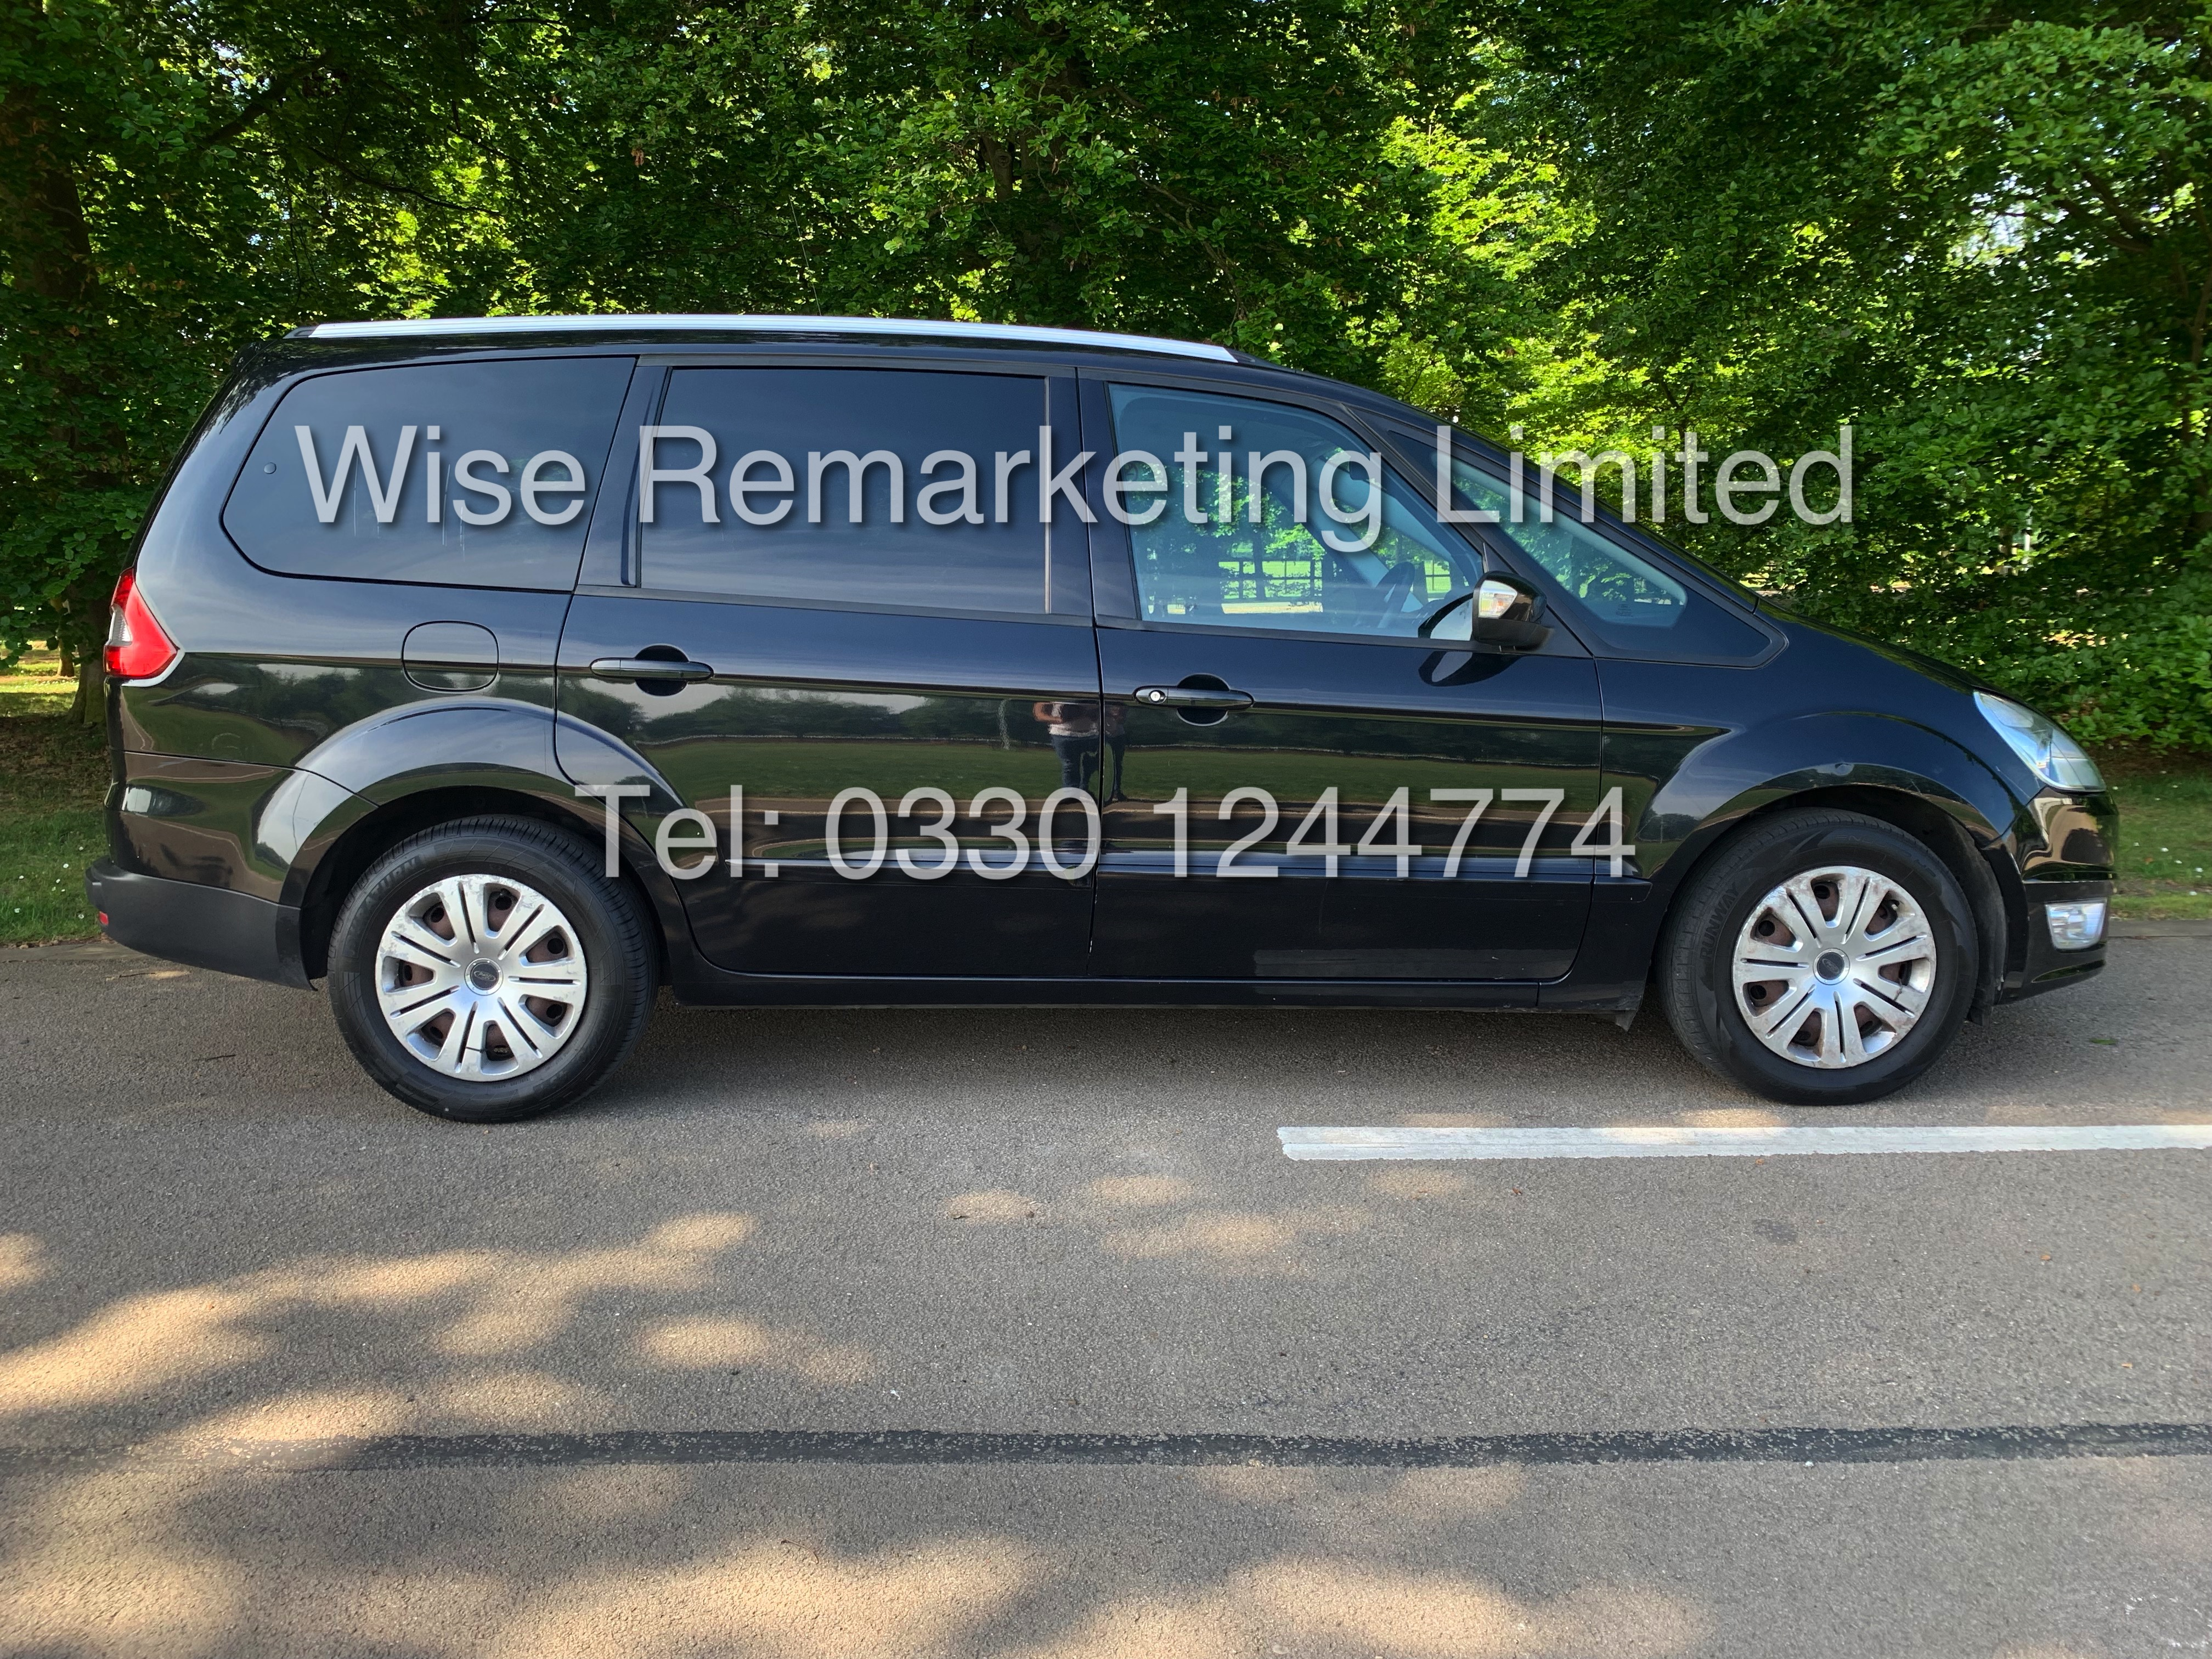 FORD GALAXY ZETEC 2.0L TDCI AUTO 7 SEATER MPV 63 REG *1 OWNER* - Image 2 of 20